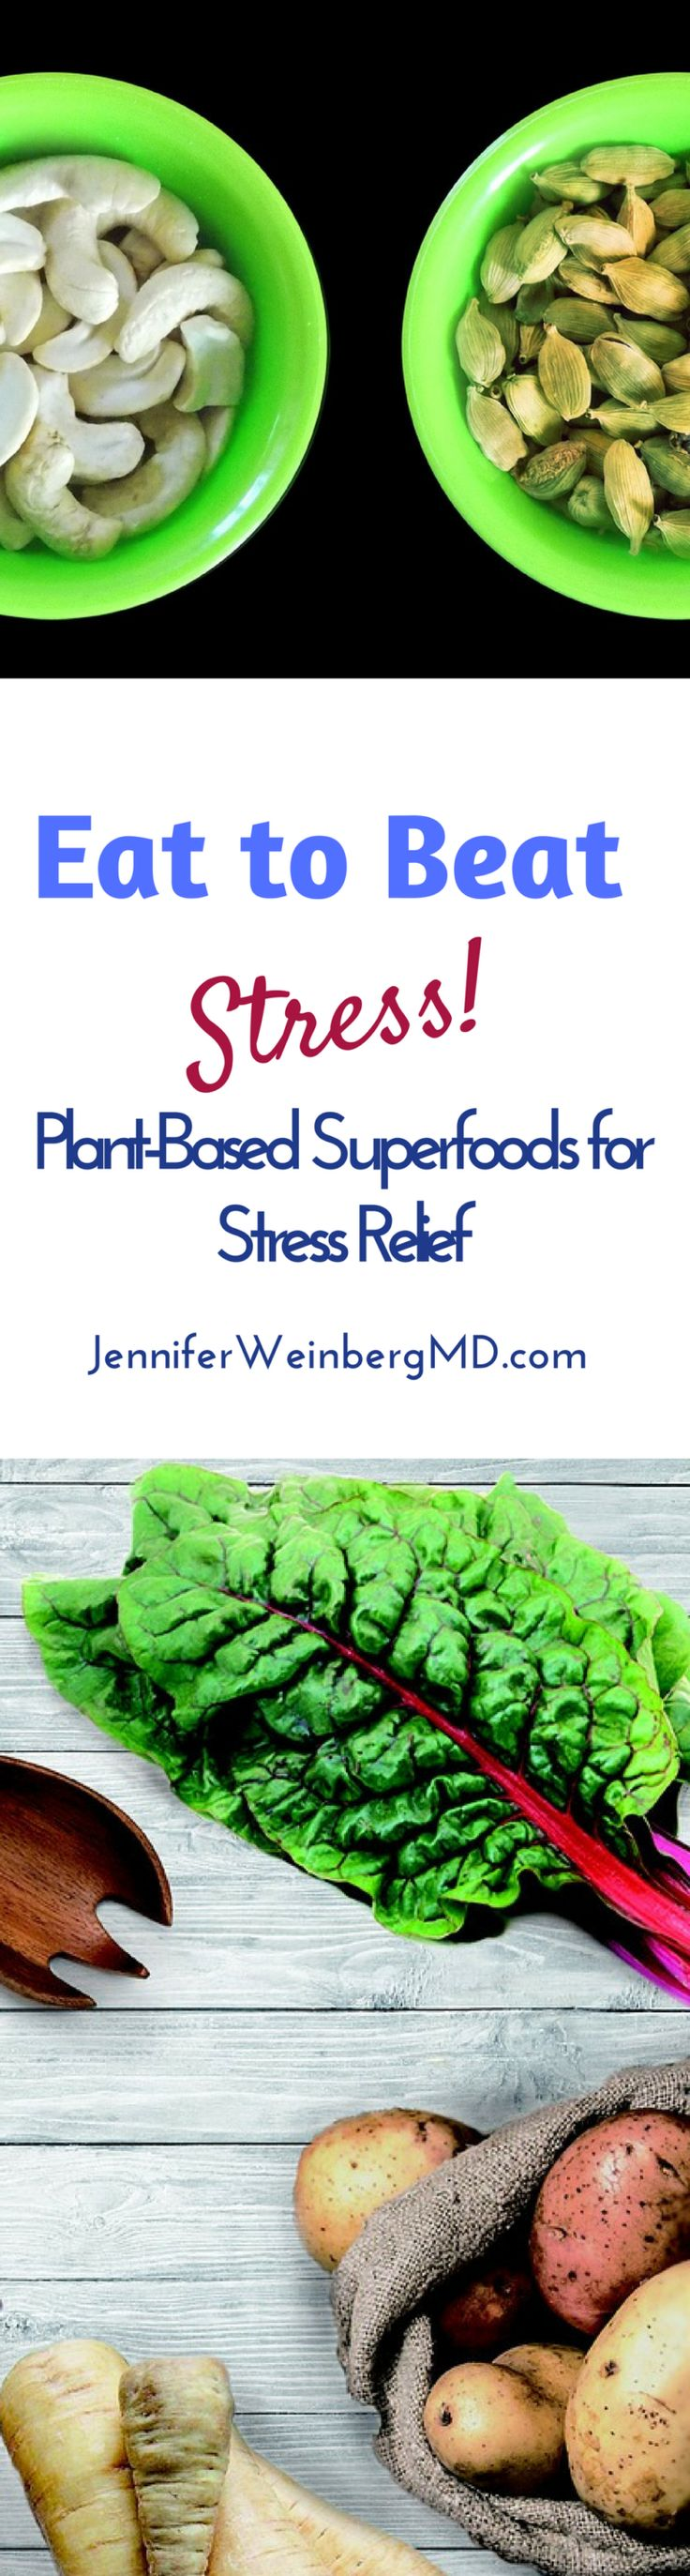 #Eat to Beat #Stress Enjoy These Plant-Based #Superfoods for Stress Relief #plantbased #food #nutrition #health #wellness #vegan #vegetarian #glutenfree #recipes #healthyfood #stressrelief #relax #stressmangement